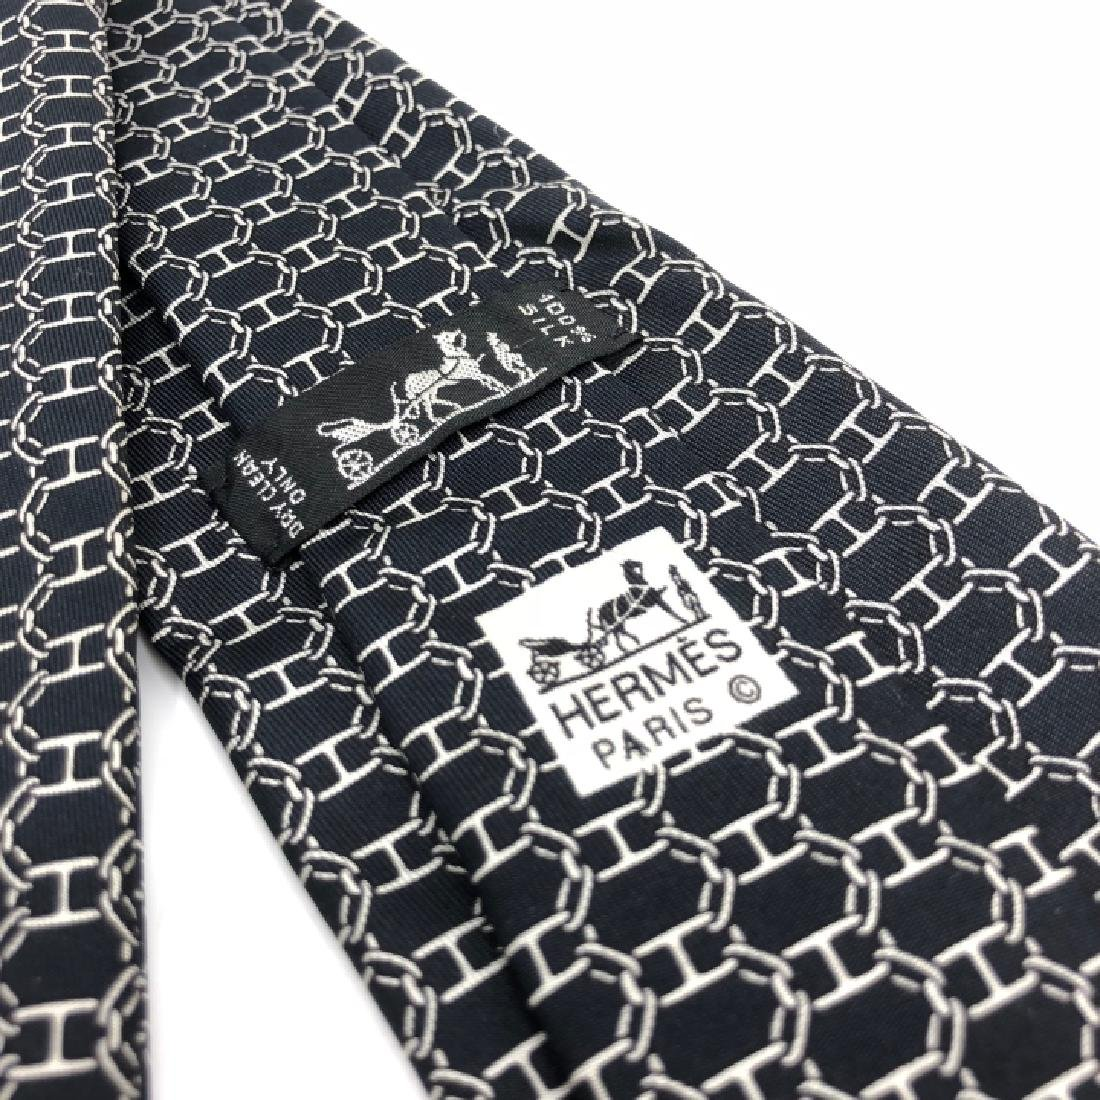 Vintage Authentic Hermes Black & White Men's Tie - 2